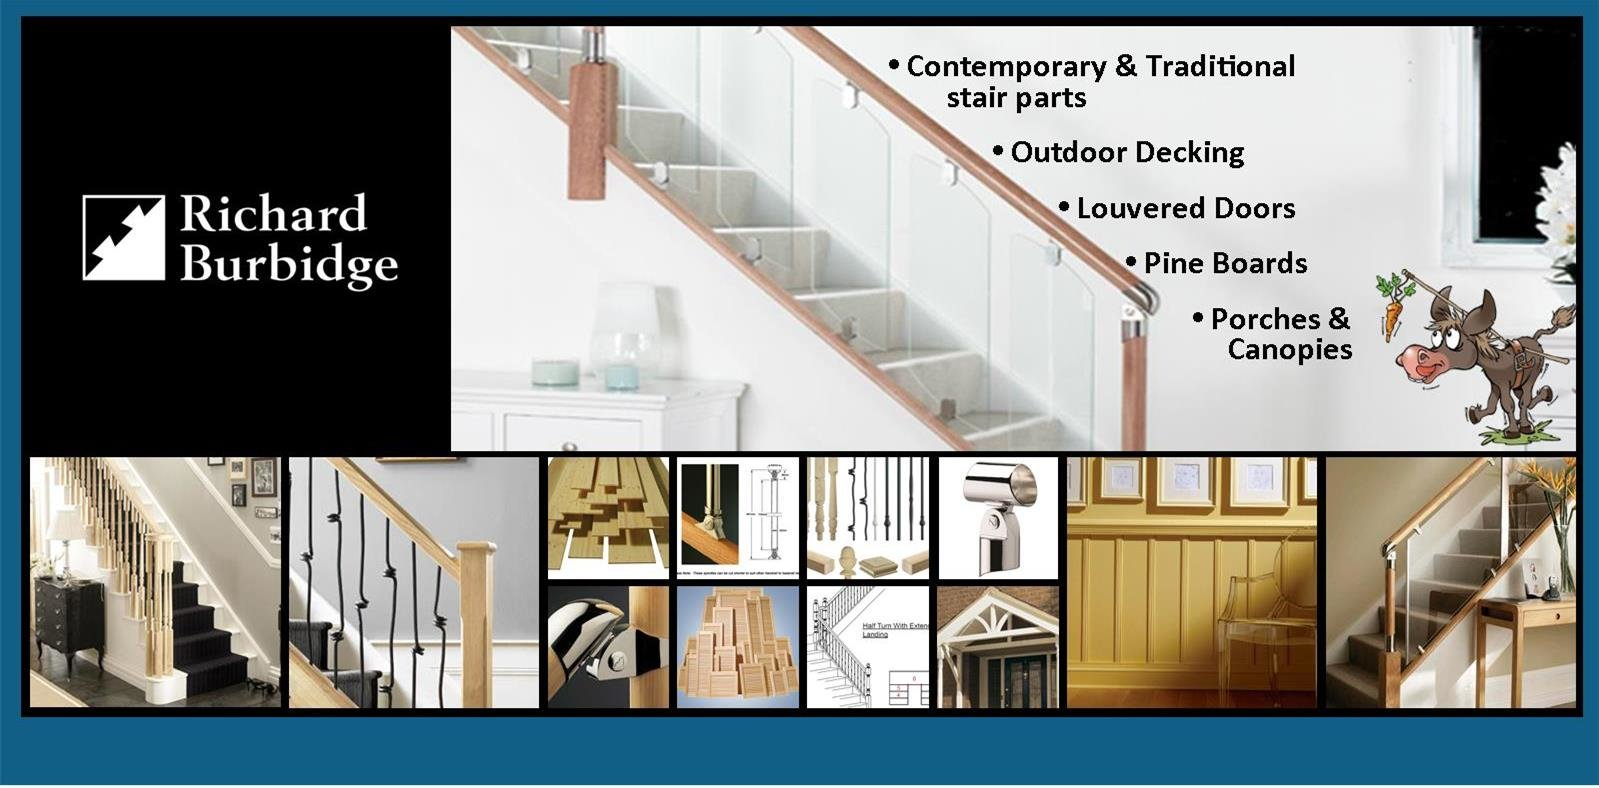 Wonkee Donkee Richard Burbidge for contemporary stair parts, traditional stair parts, bannisters, decking, newels, handrails, louvered doors, pine board, skirting, mouldings, architrave, metal spindles, newels and newel posts